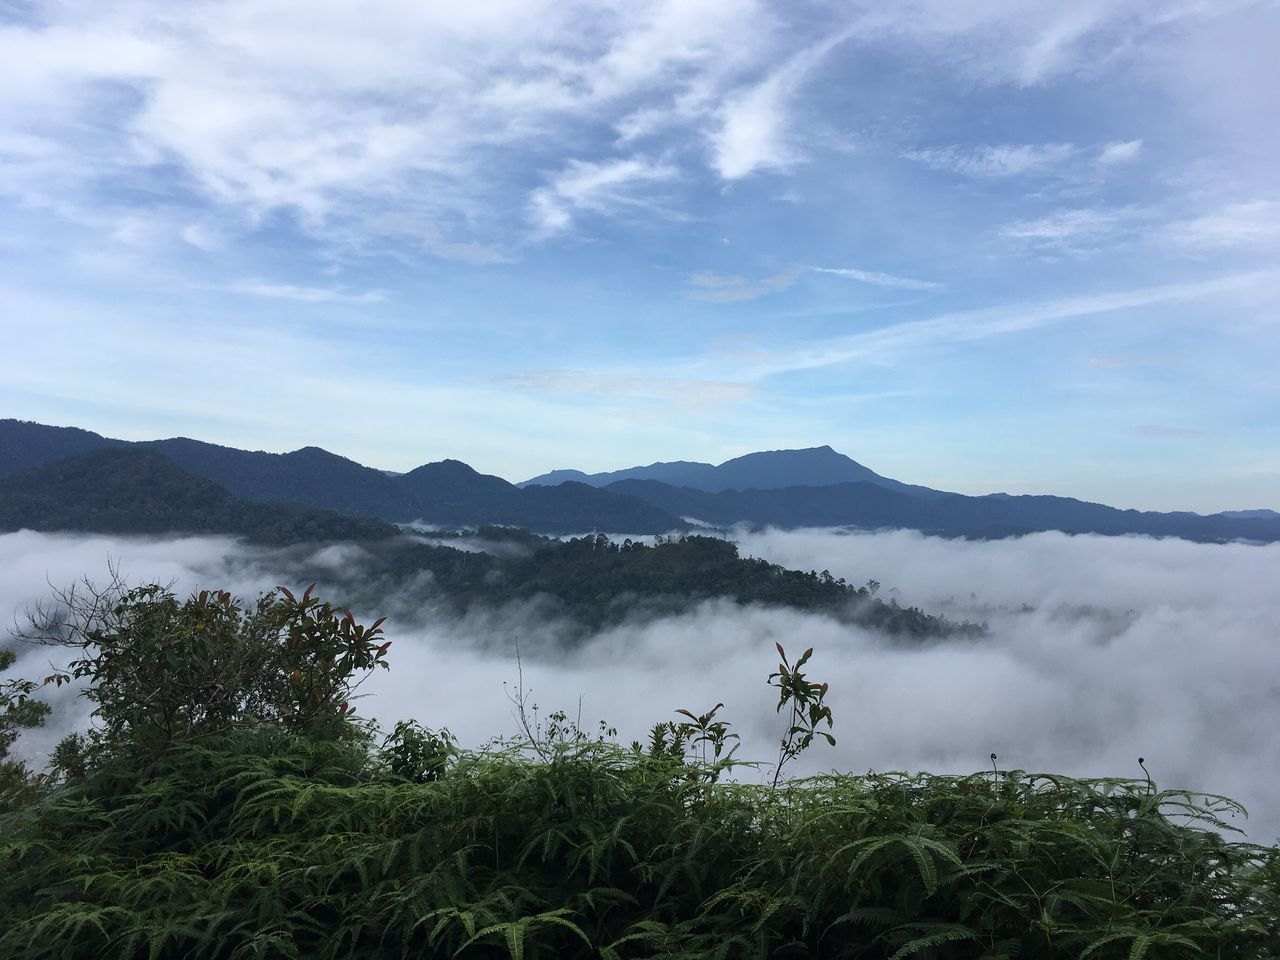 Mountain Nature Tranquility Scenics Tree Beauty In Nature Landscape Tranquil Scene Sky Outdoors Mountain Range Growth Water No People Day Cloud - Sky Tourist Pahang, Malaysia Malaysia Sungai Lembing Leisure Activity Misty Morning